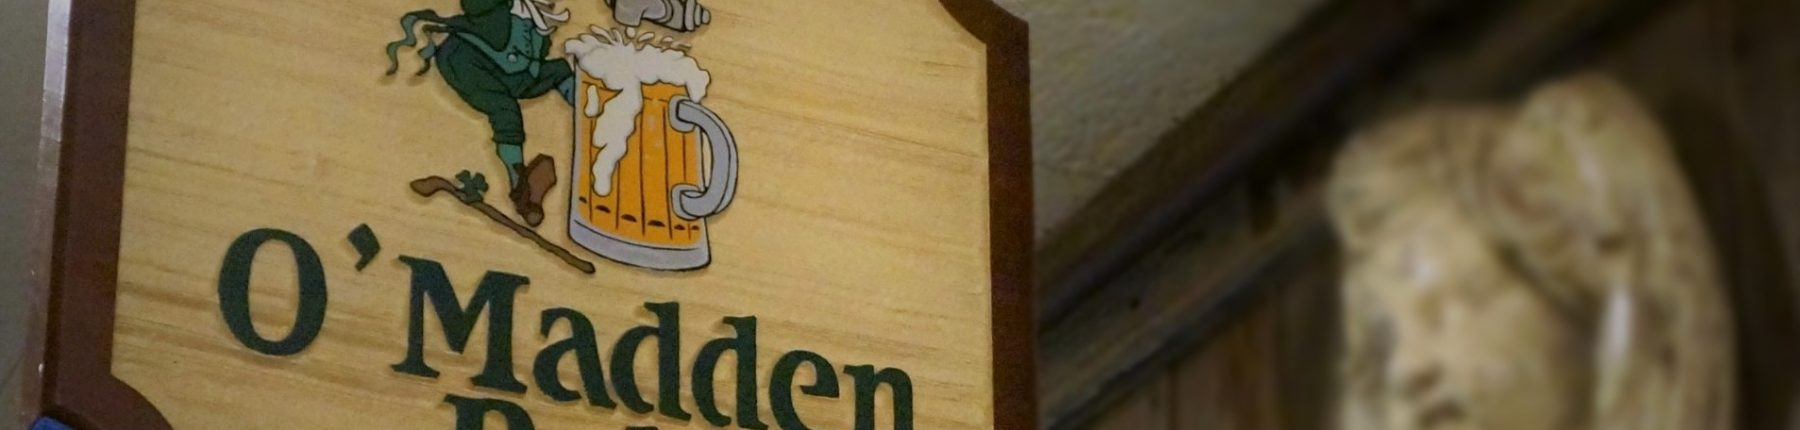 Closeup of the O'madden's pub wooden signage at the entrance of the pub